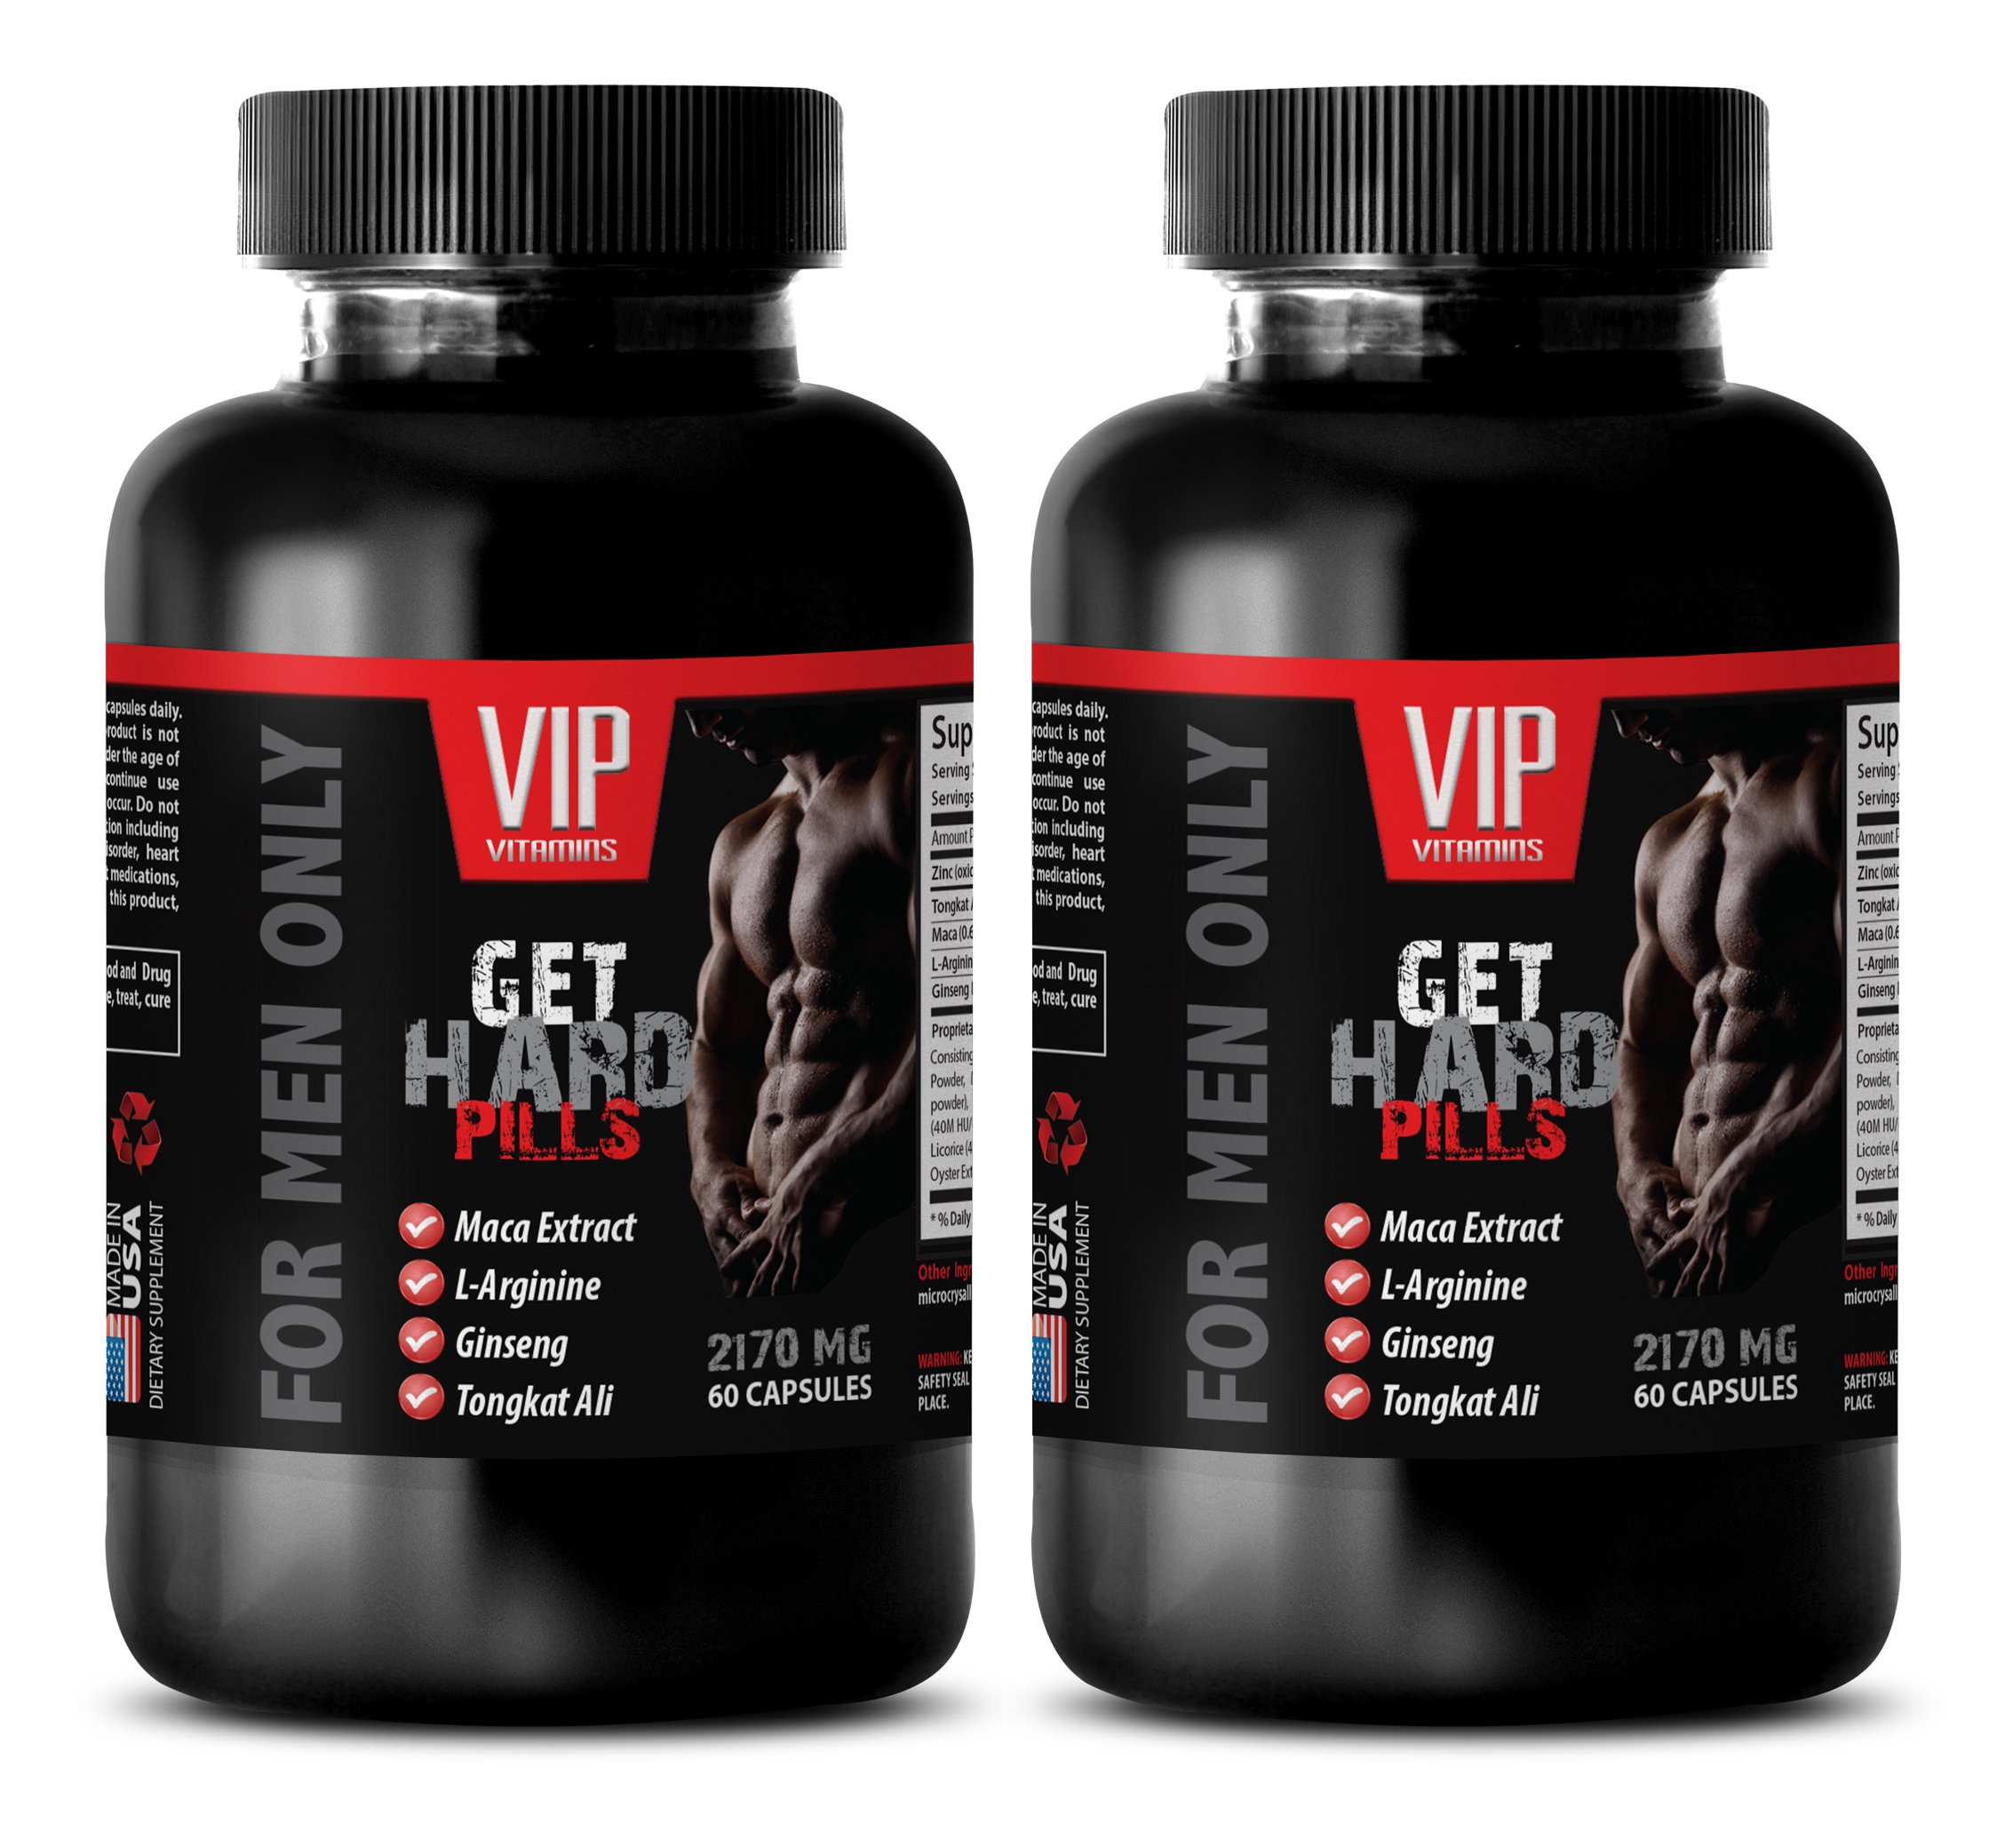 Male enhancing pills increase size and girth - GET HARD PILLS (FOR MEN ONLY) - Yohimbine men - 2 Bottles 120 Capsules